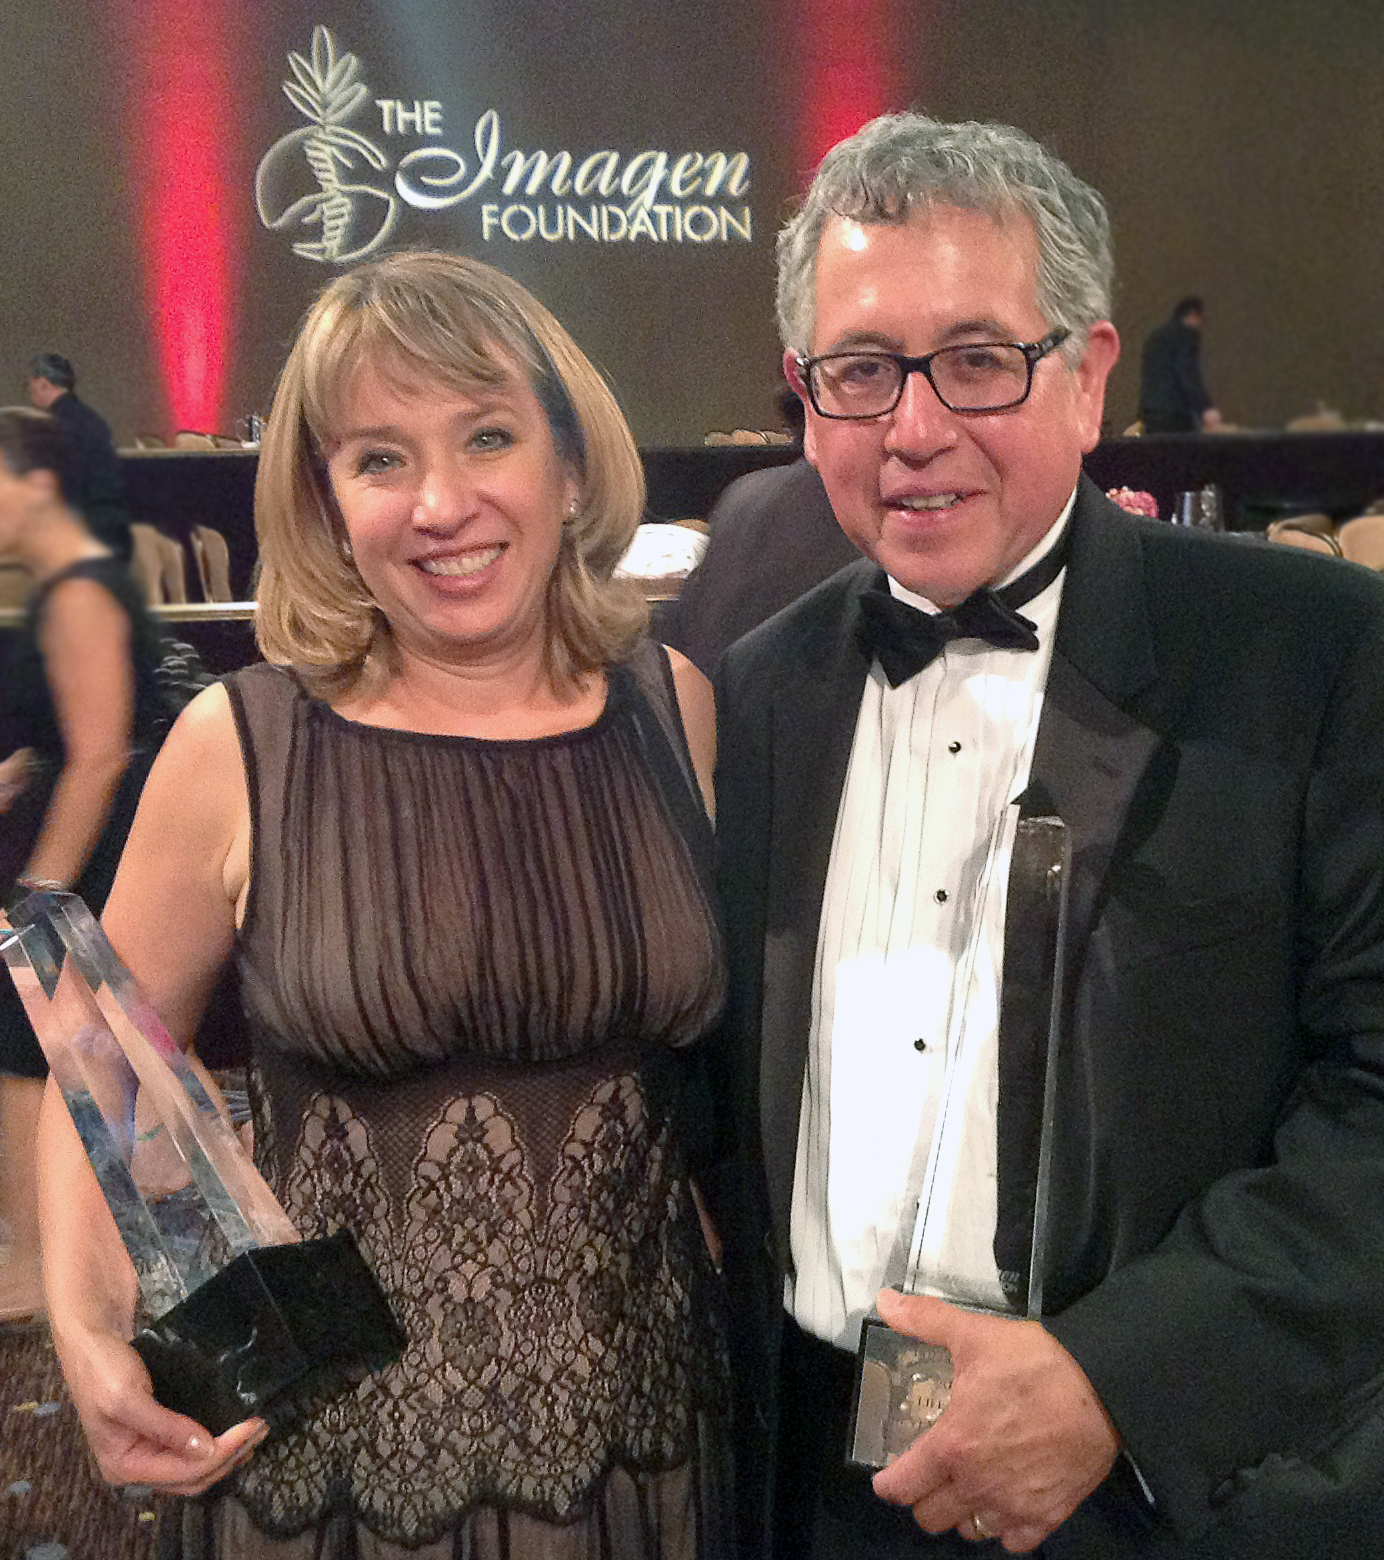 Wendy Thompson-Marquez Producer of Imagen Best Documentary of the Year Award and Jesus Salvador Trevino who received Imagen Lifetime Achievement Award.